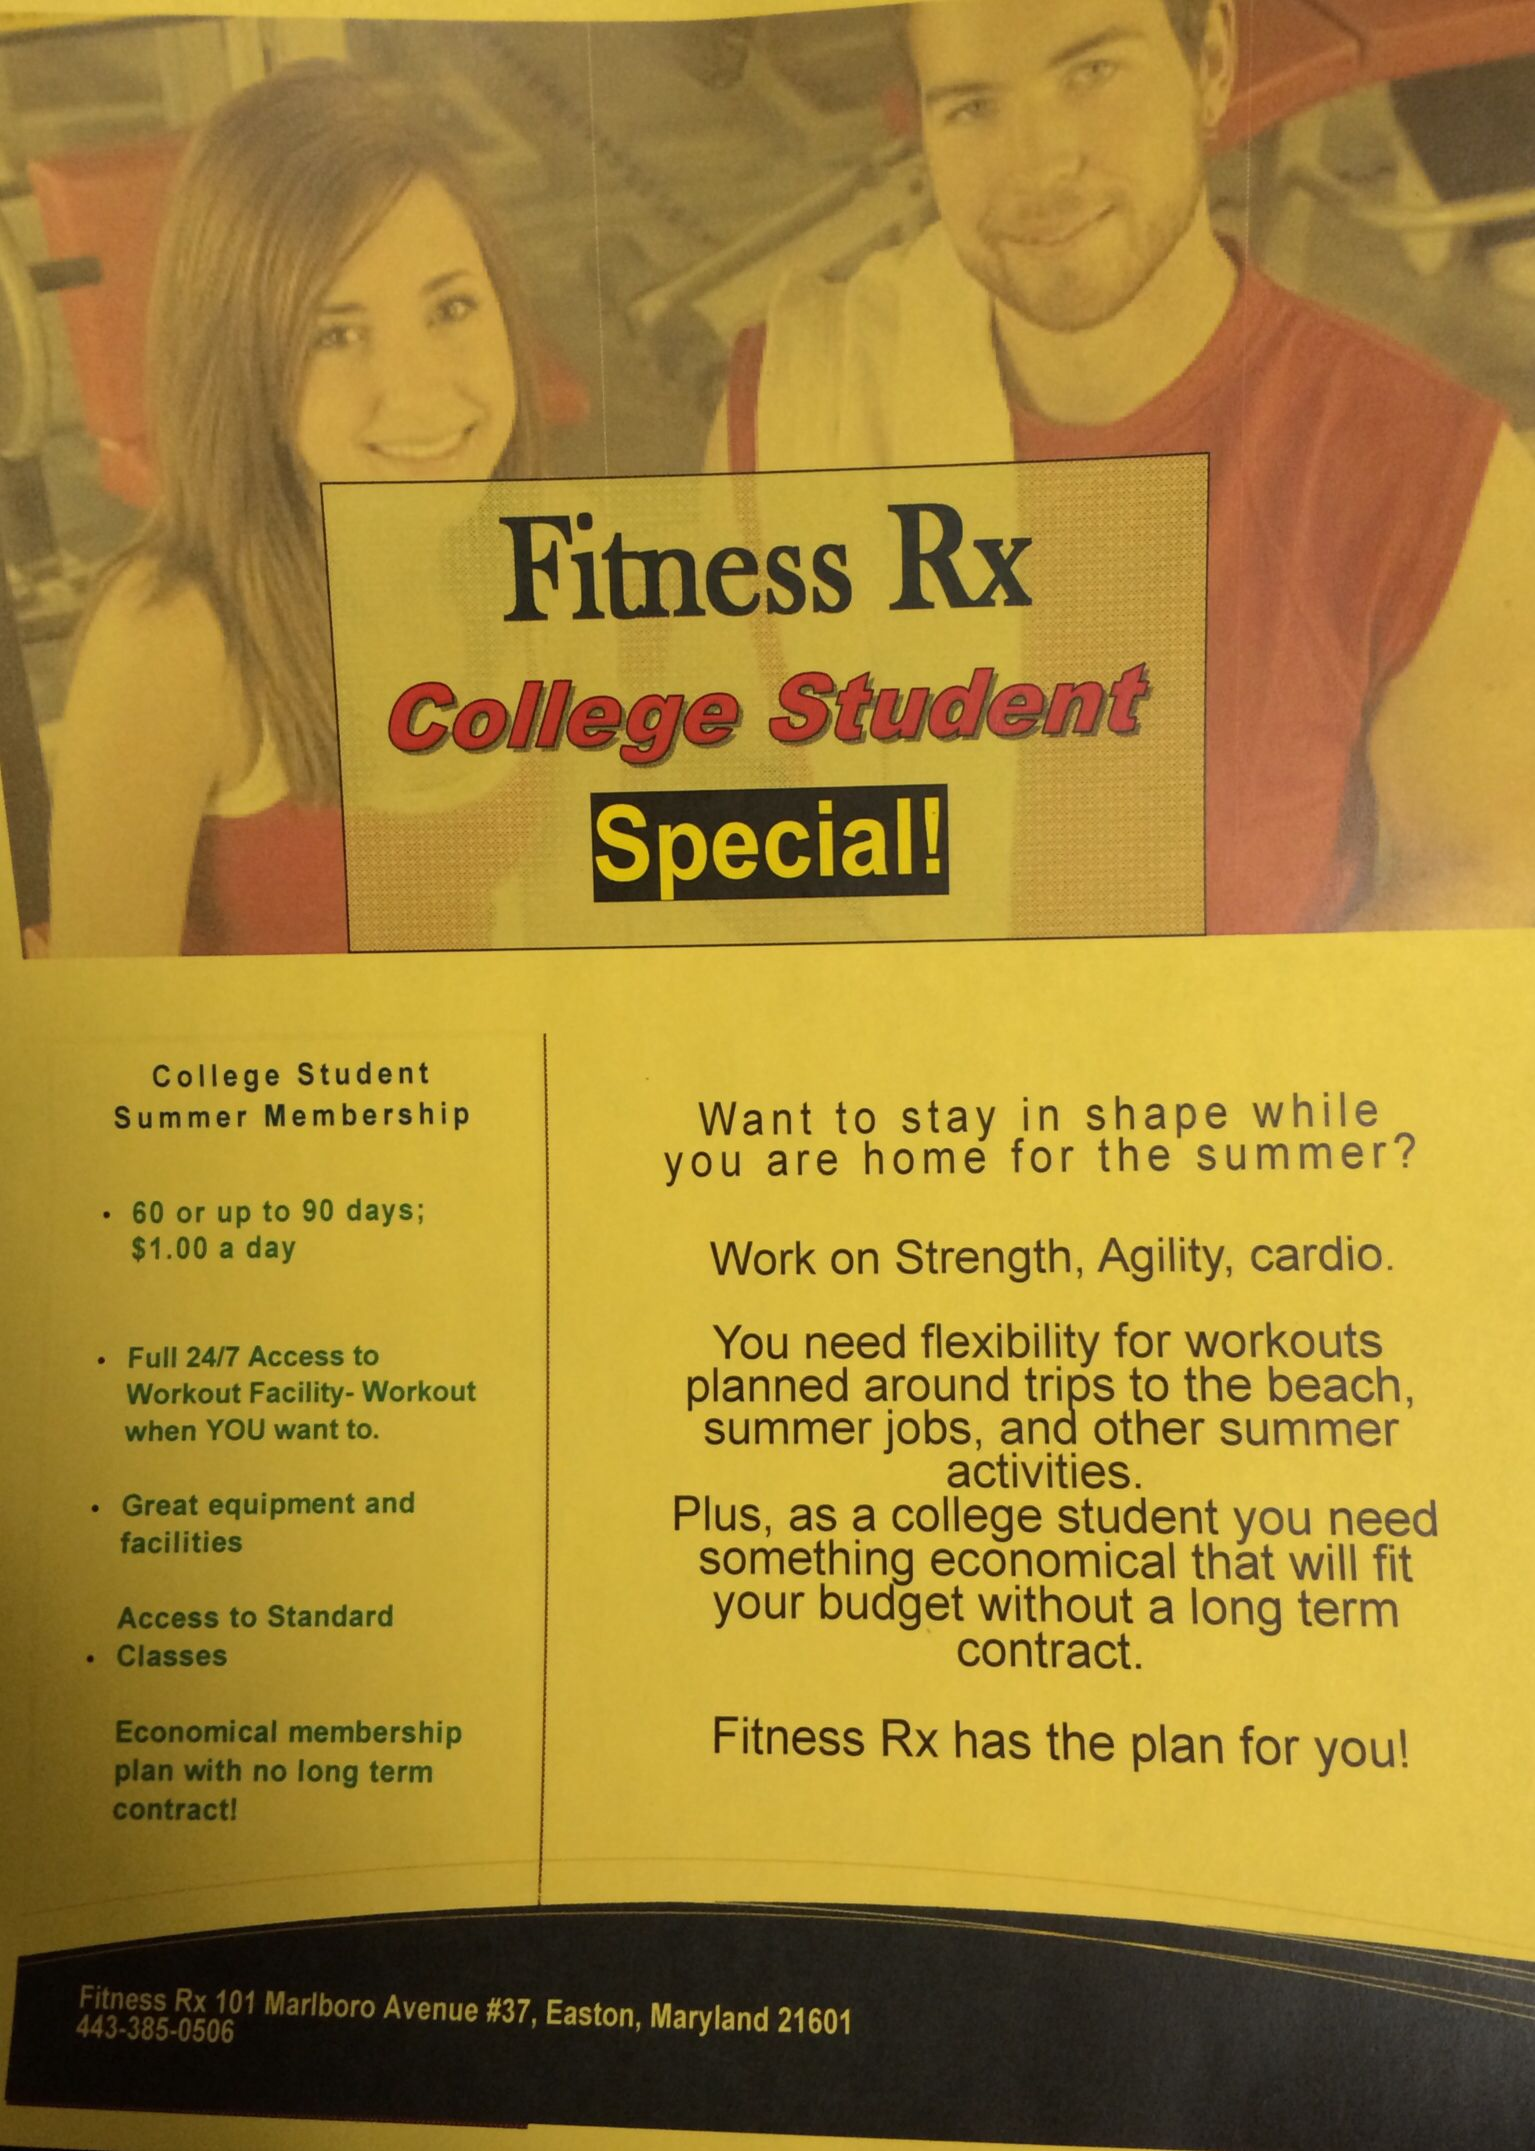 Student summer gym membership special | Fitness Rx 24 hr studios in